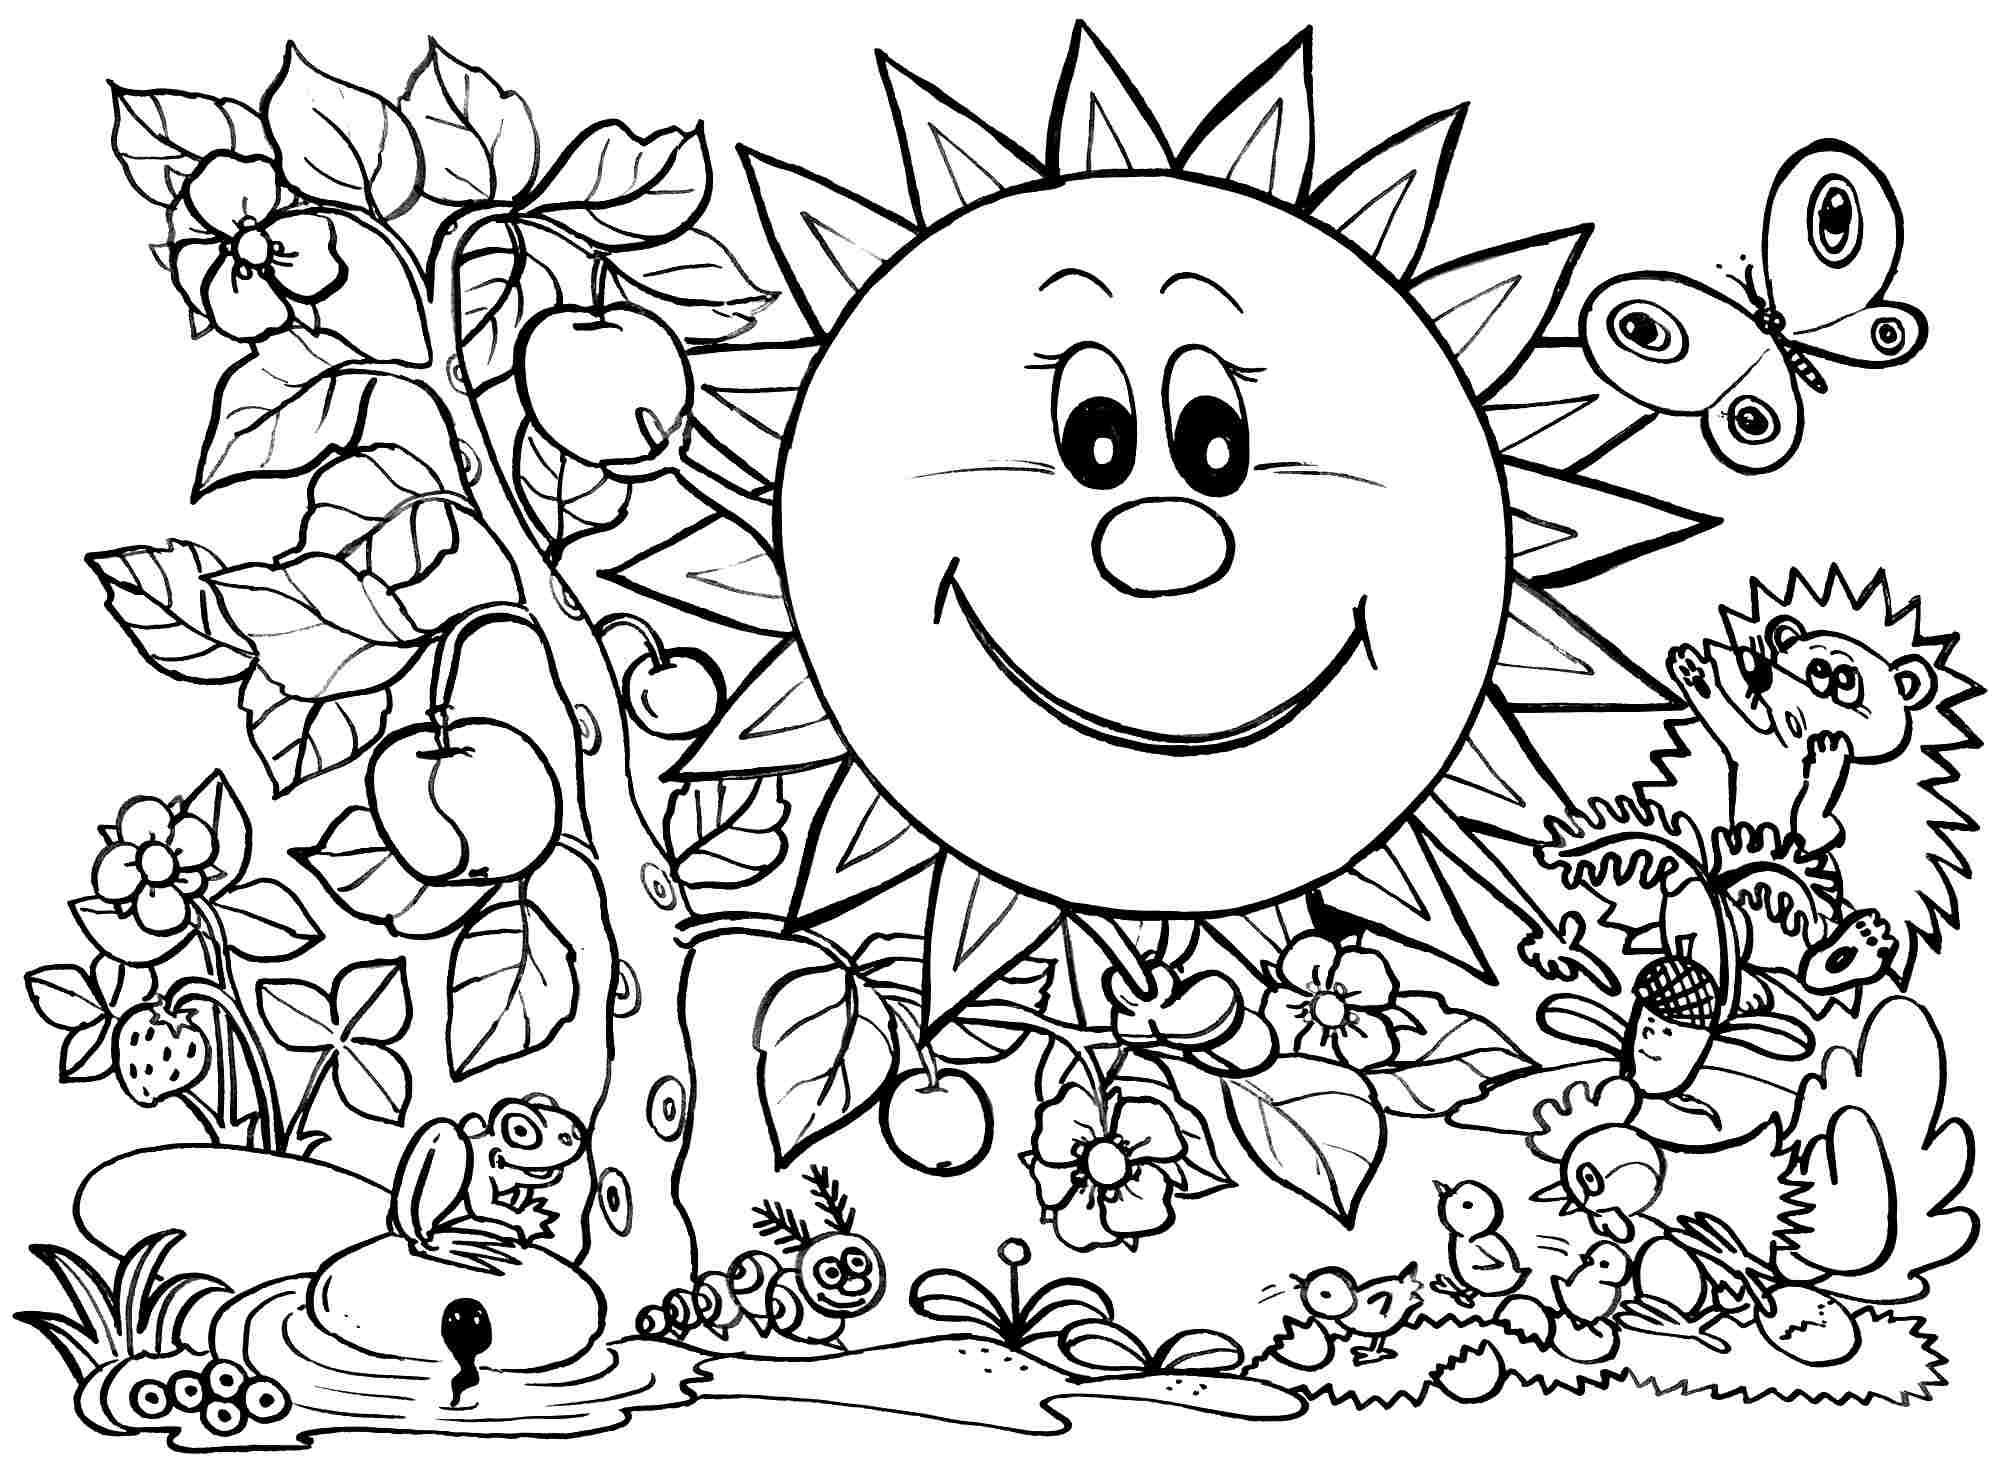 Free coloring pages for spring - Spring Coloring Pages Koloringpages